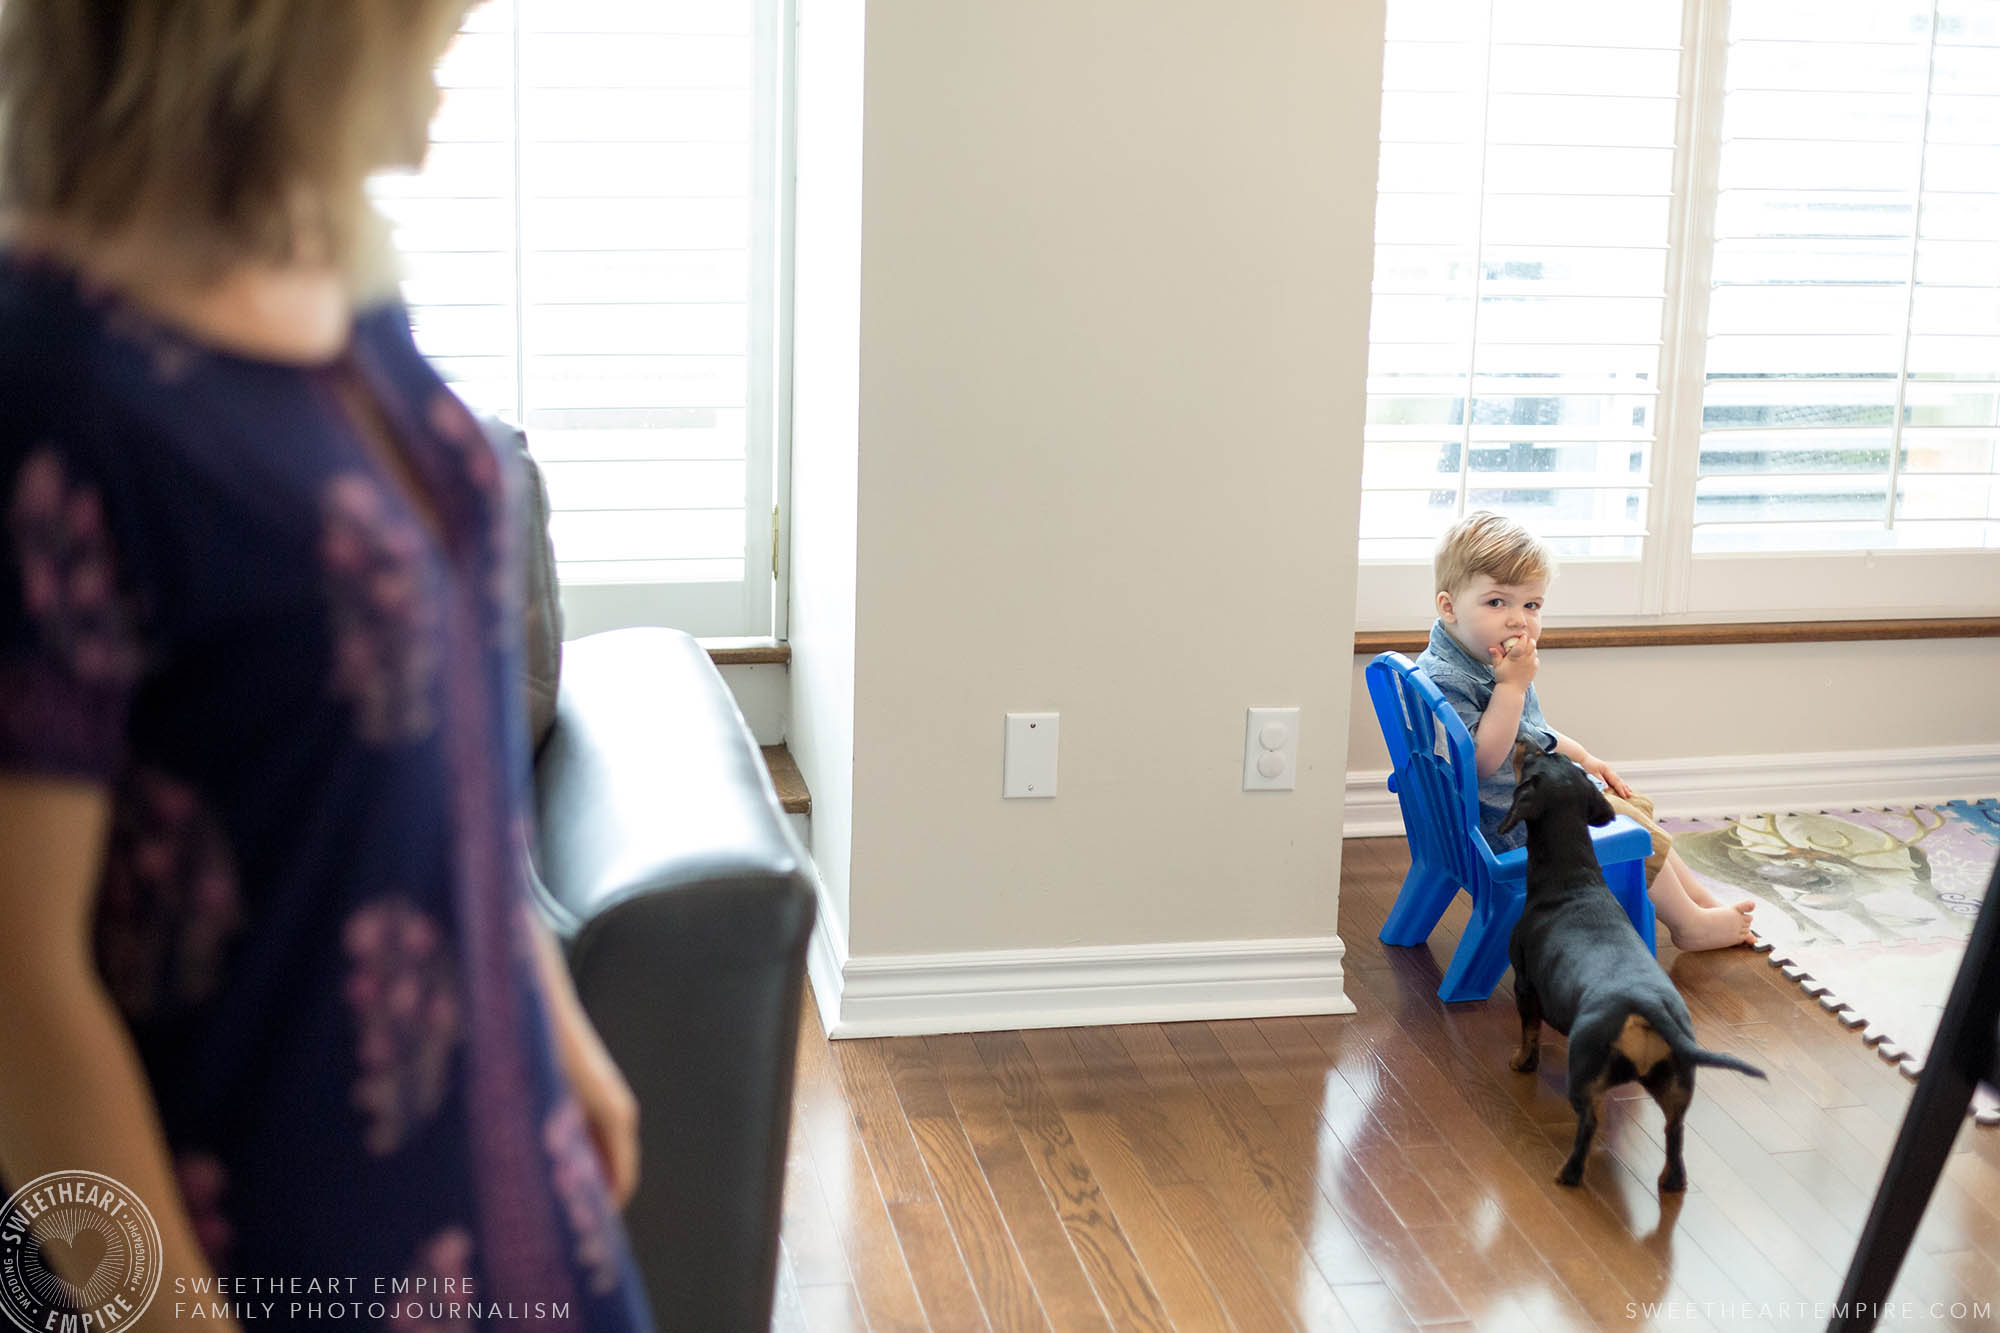 12_Toddler stuffs banana in mouth while dog looks on in interest.jpg